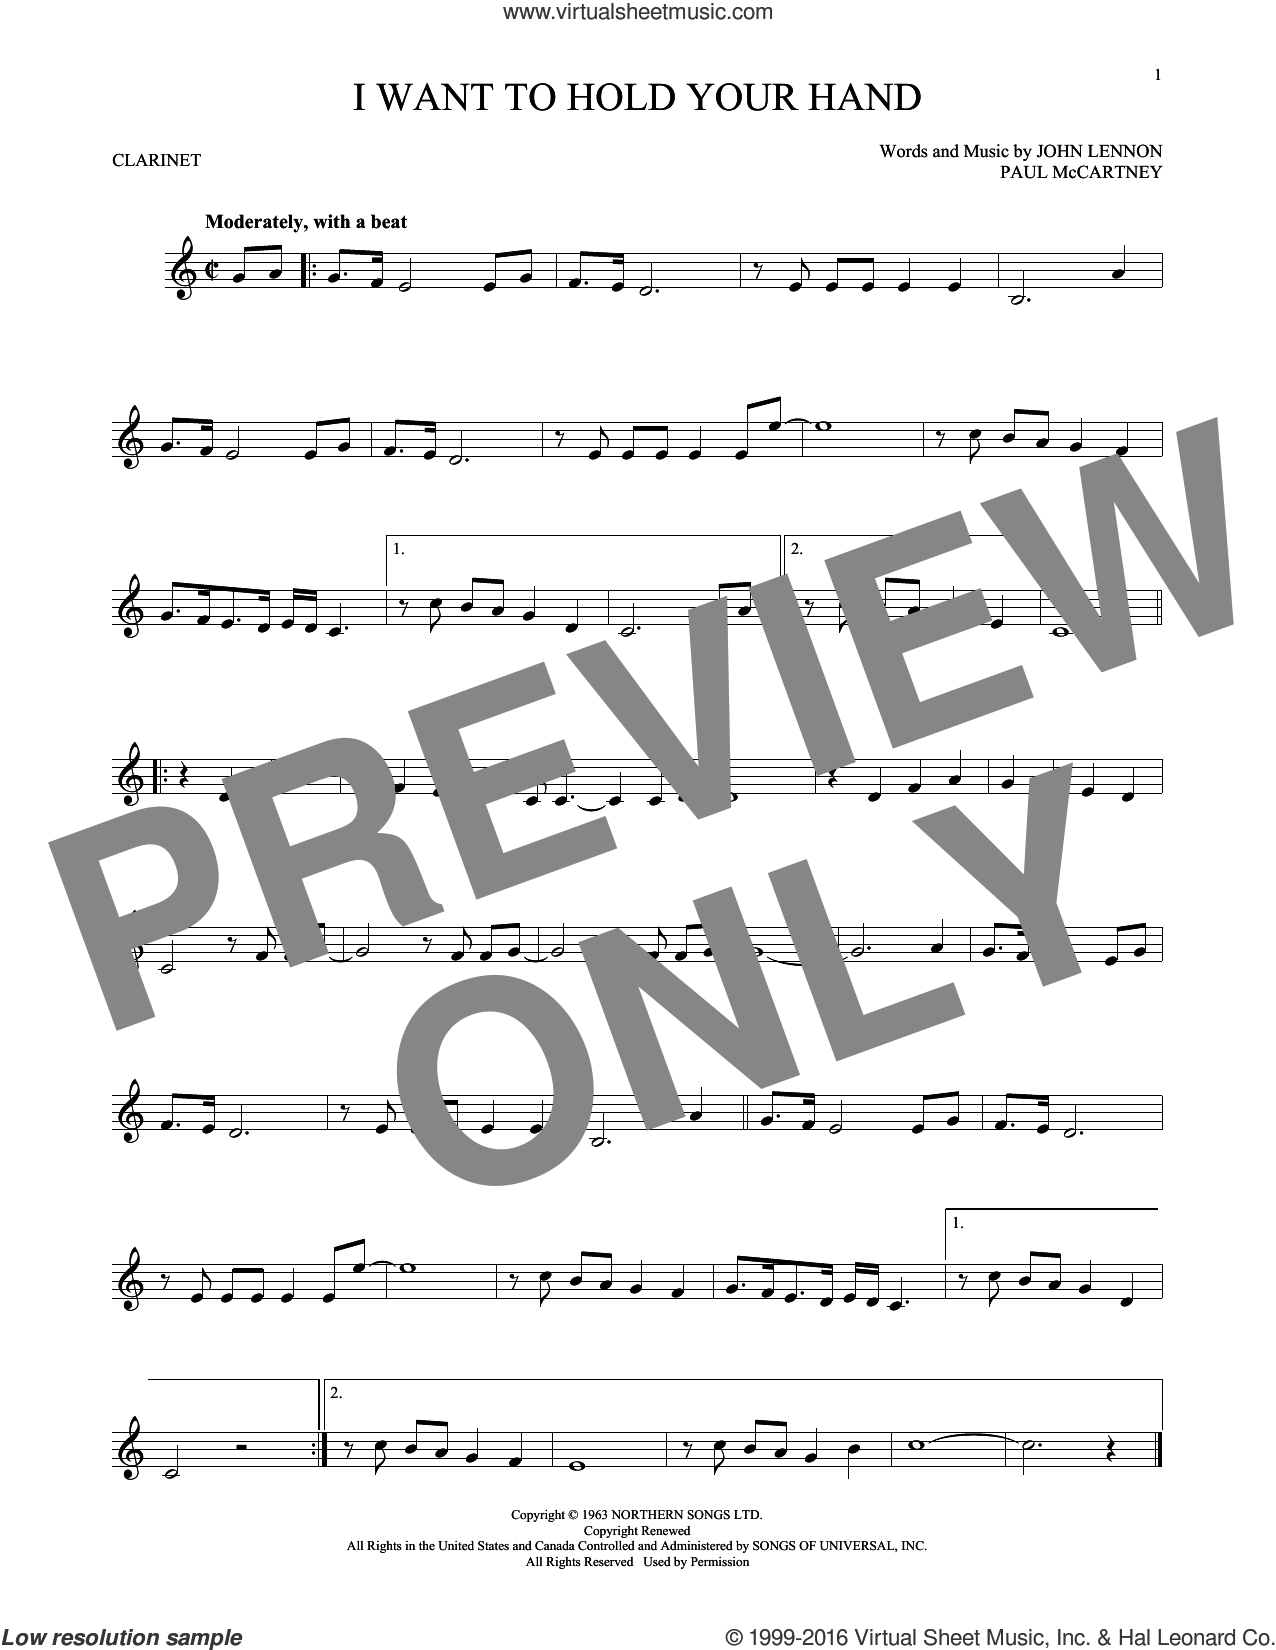 I Want To Hold Your Hand sheet music for clarinet solo by The Beatles, John Lennon and Paul McCartney, intermediate. Score Image Preview.